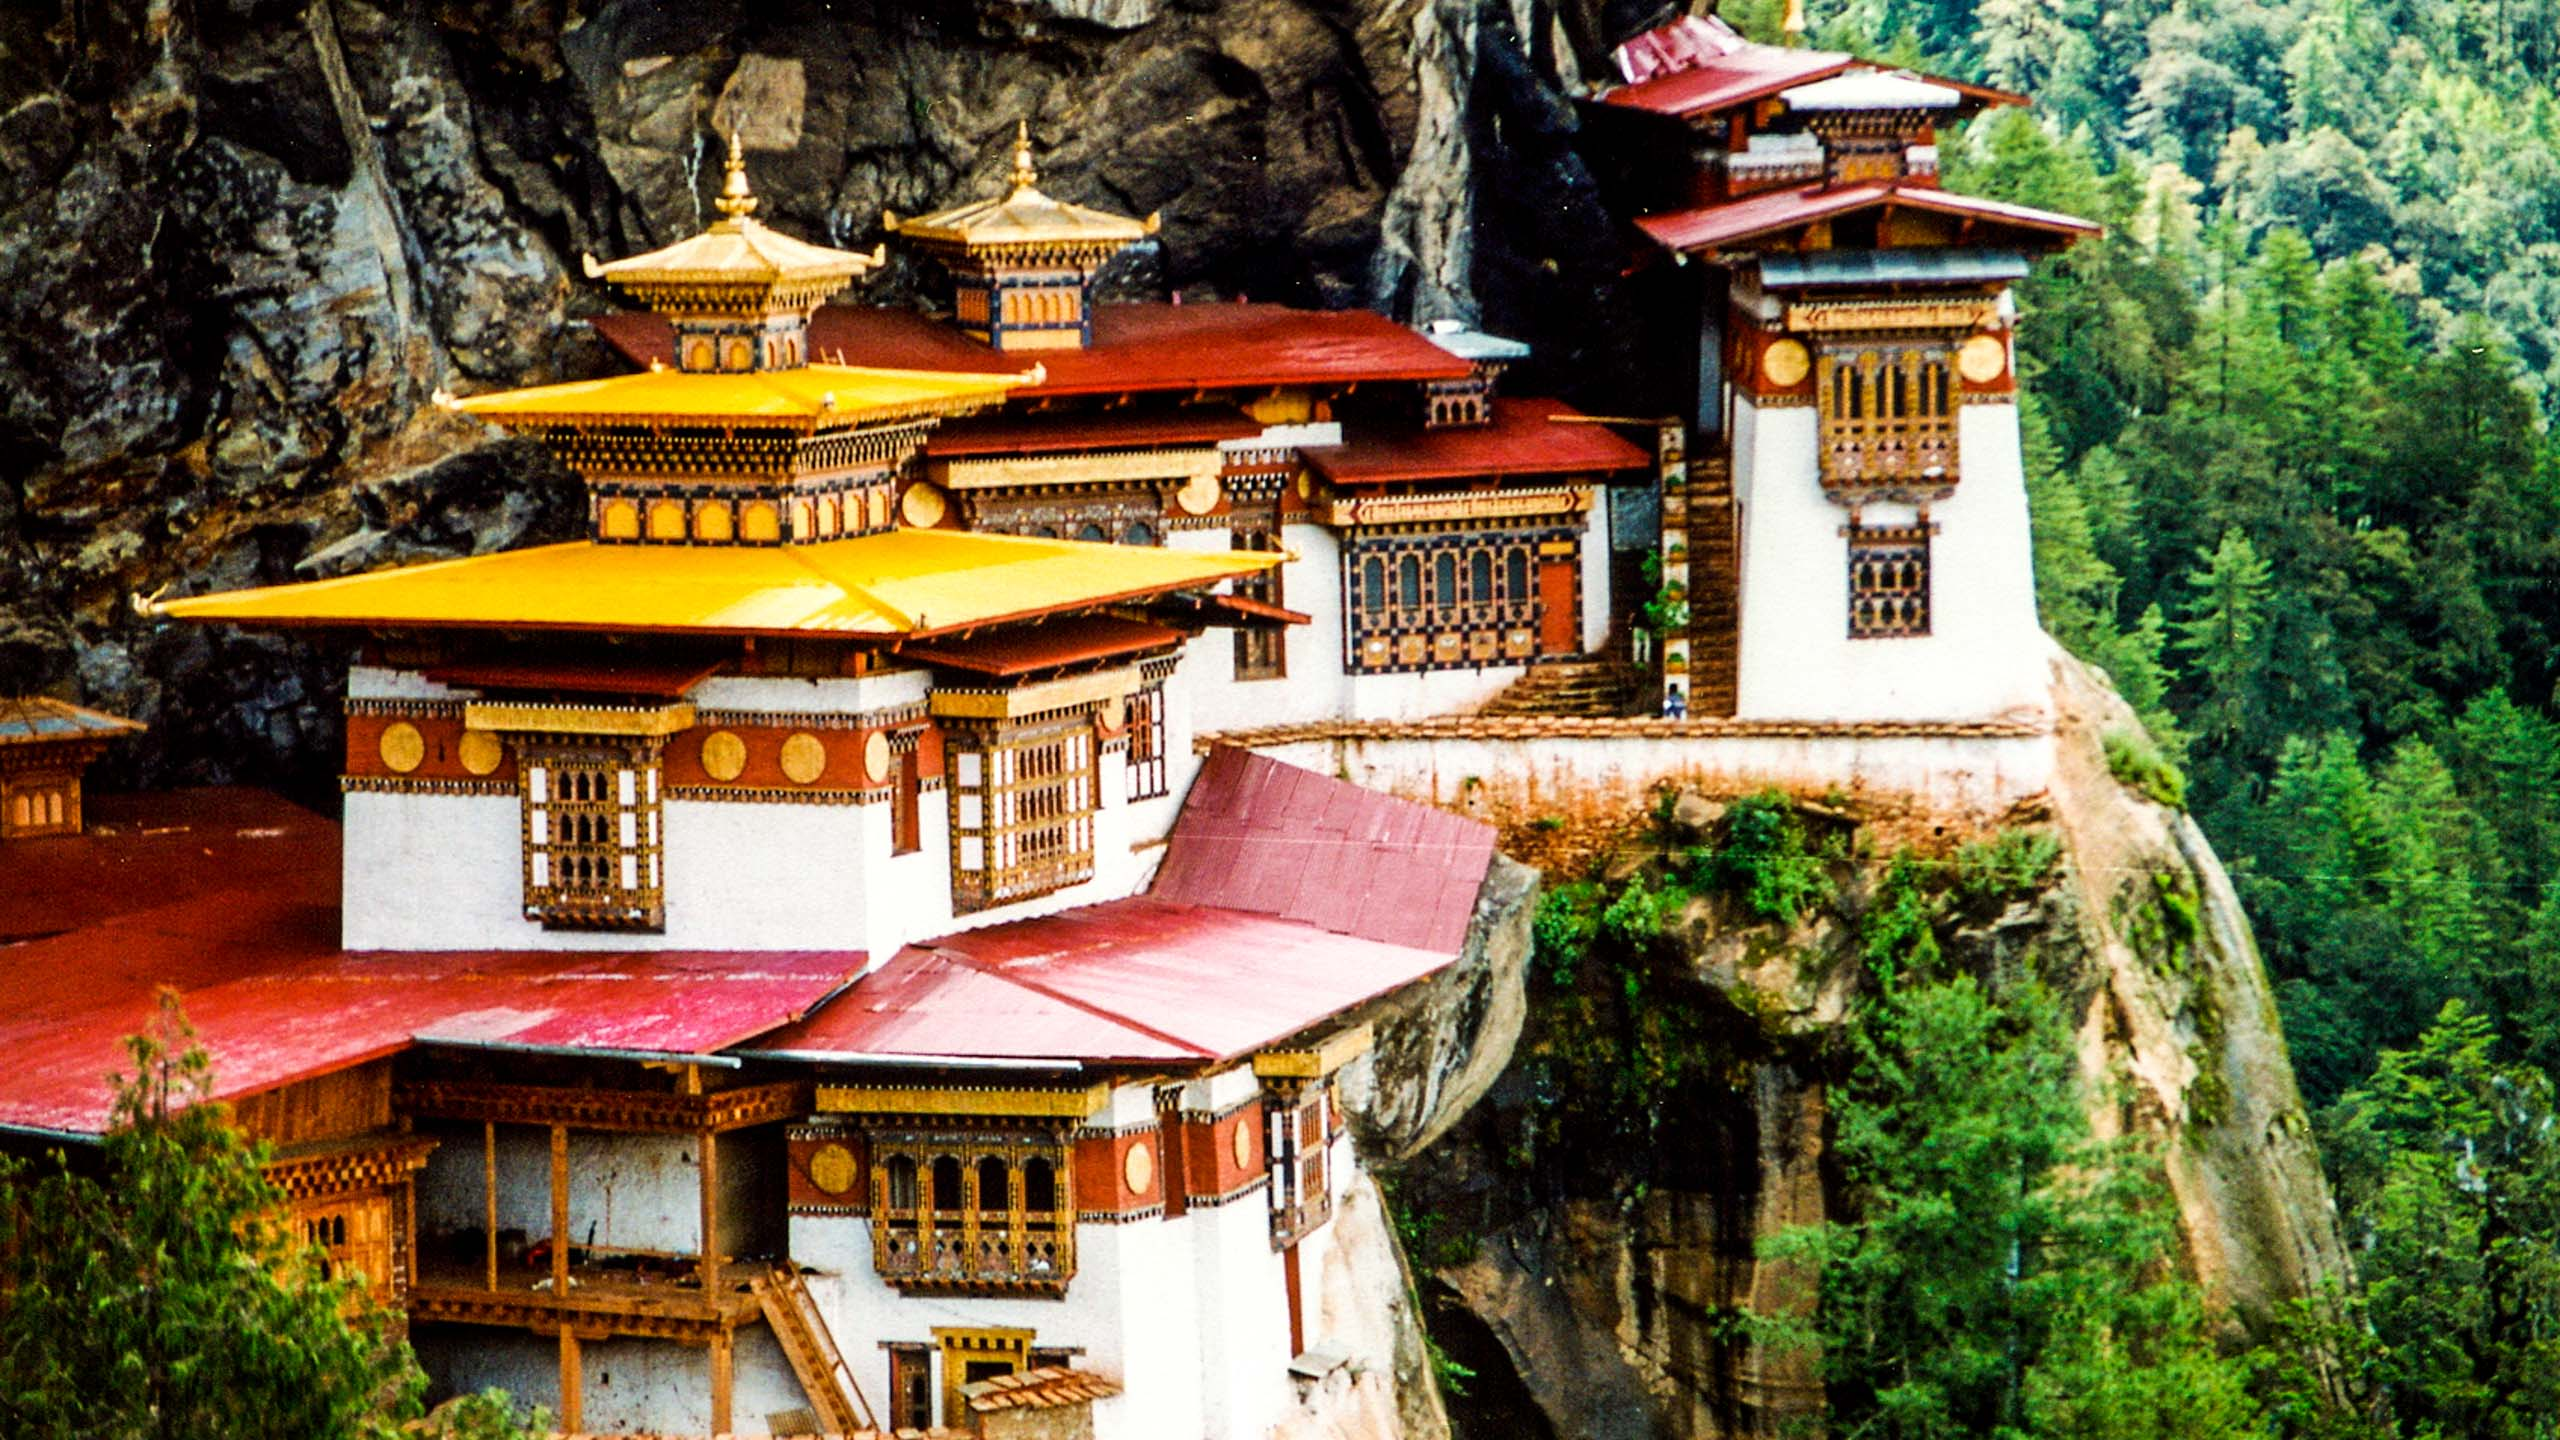 Bhutan monastery built into cliffside